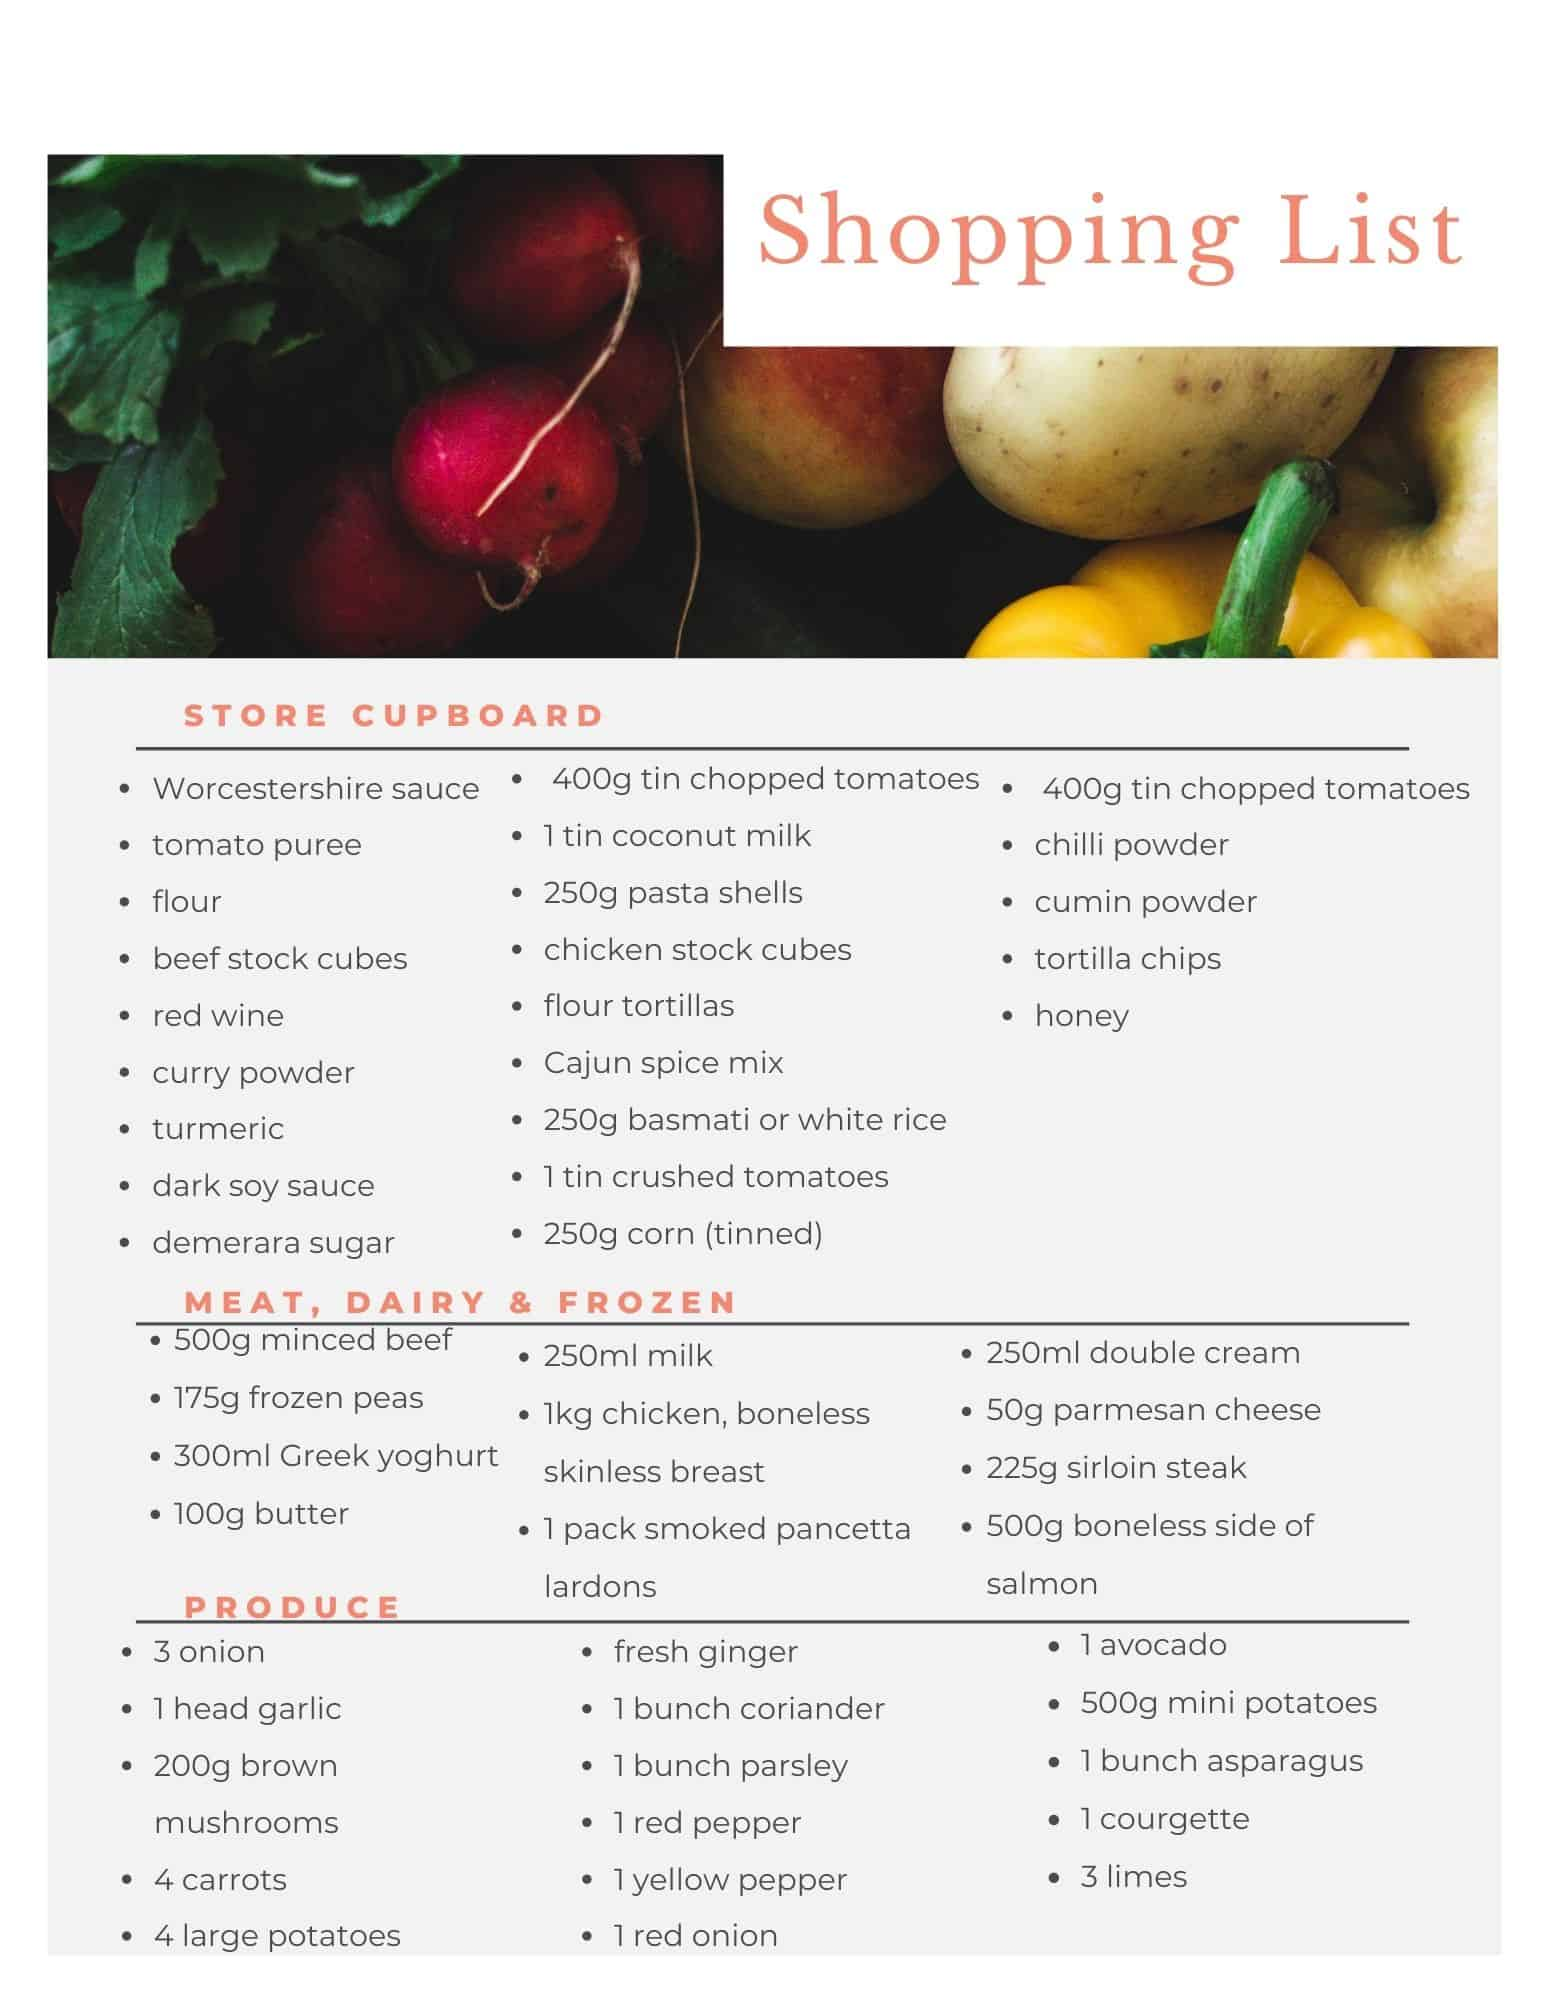 Aldi budget meal plan shopping list May 17th.